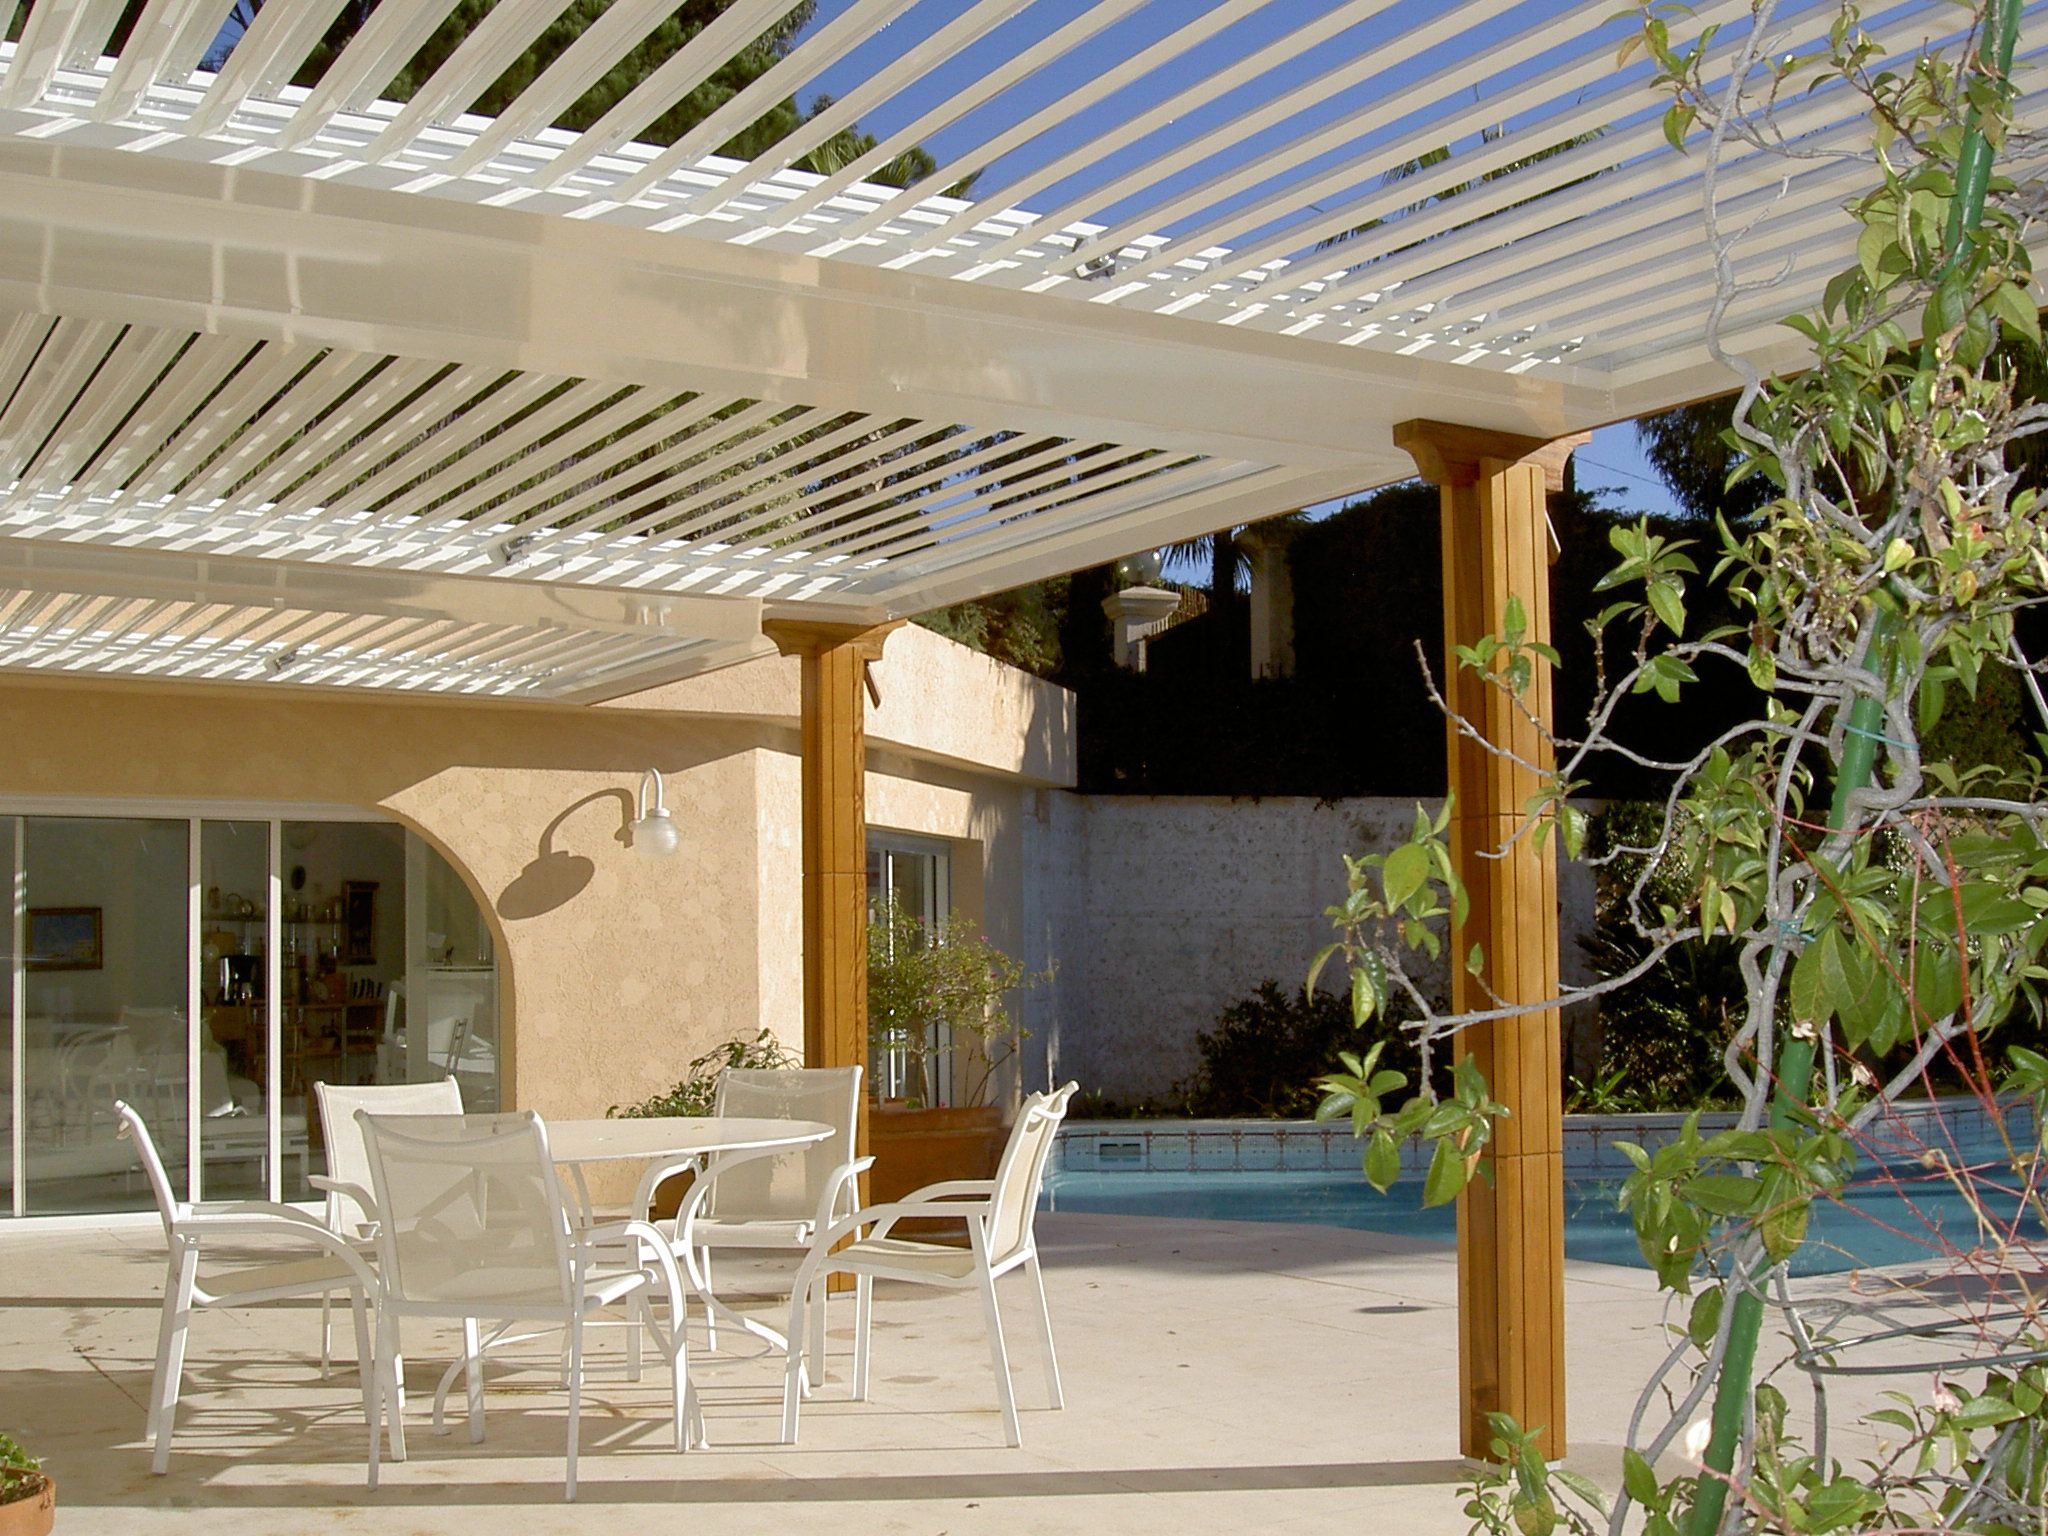 Deck & Patio Living under deck ceilings Retractable awnings